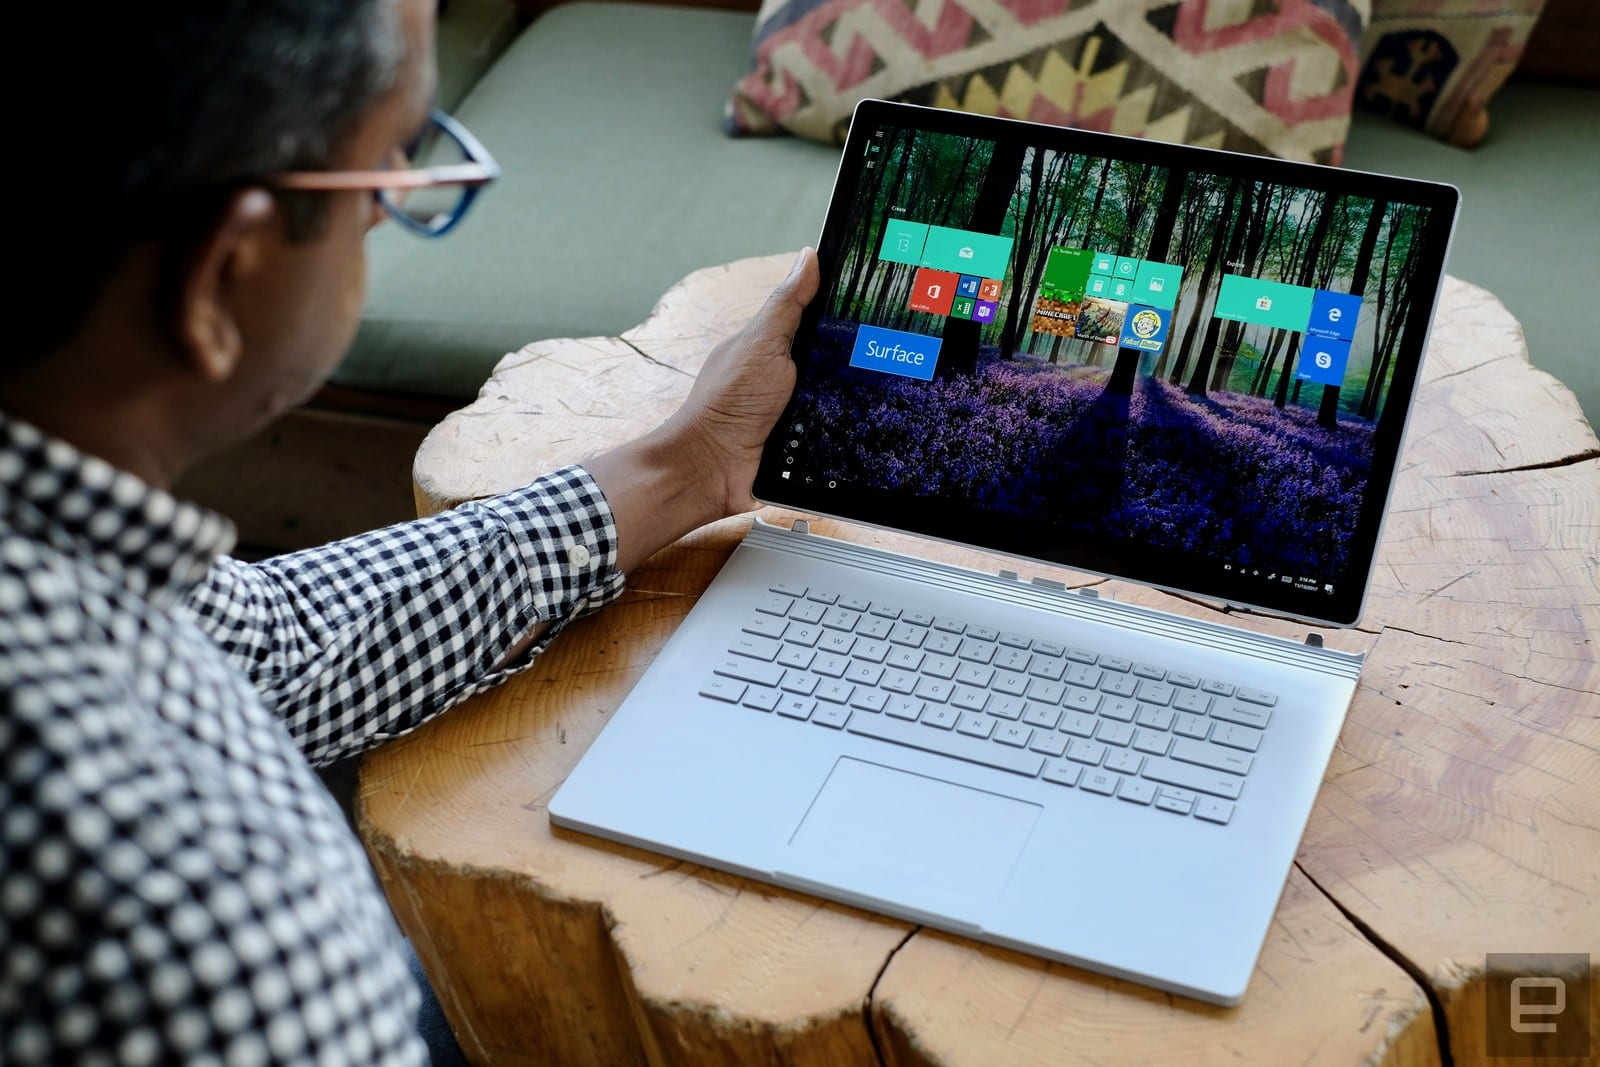 Surface Book 2 review: Microsoft gets closer to the 'ultimate laptop'